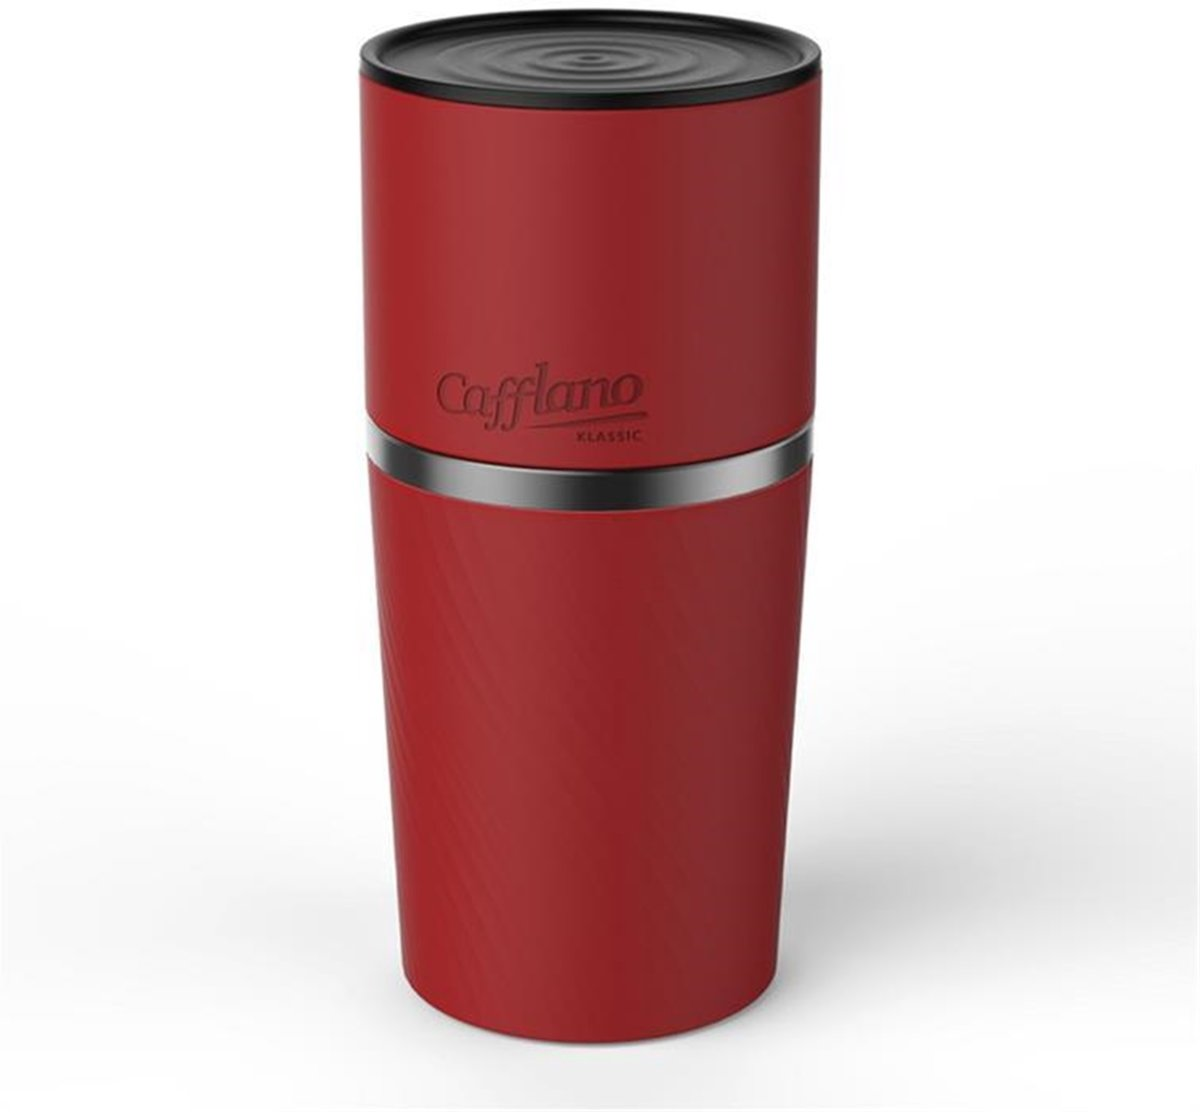 Cafflano Klassic All in One Coffee Maker, rood kopen